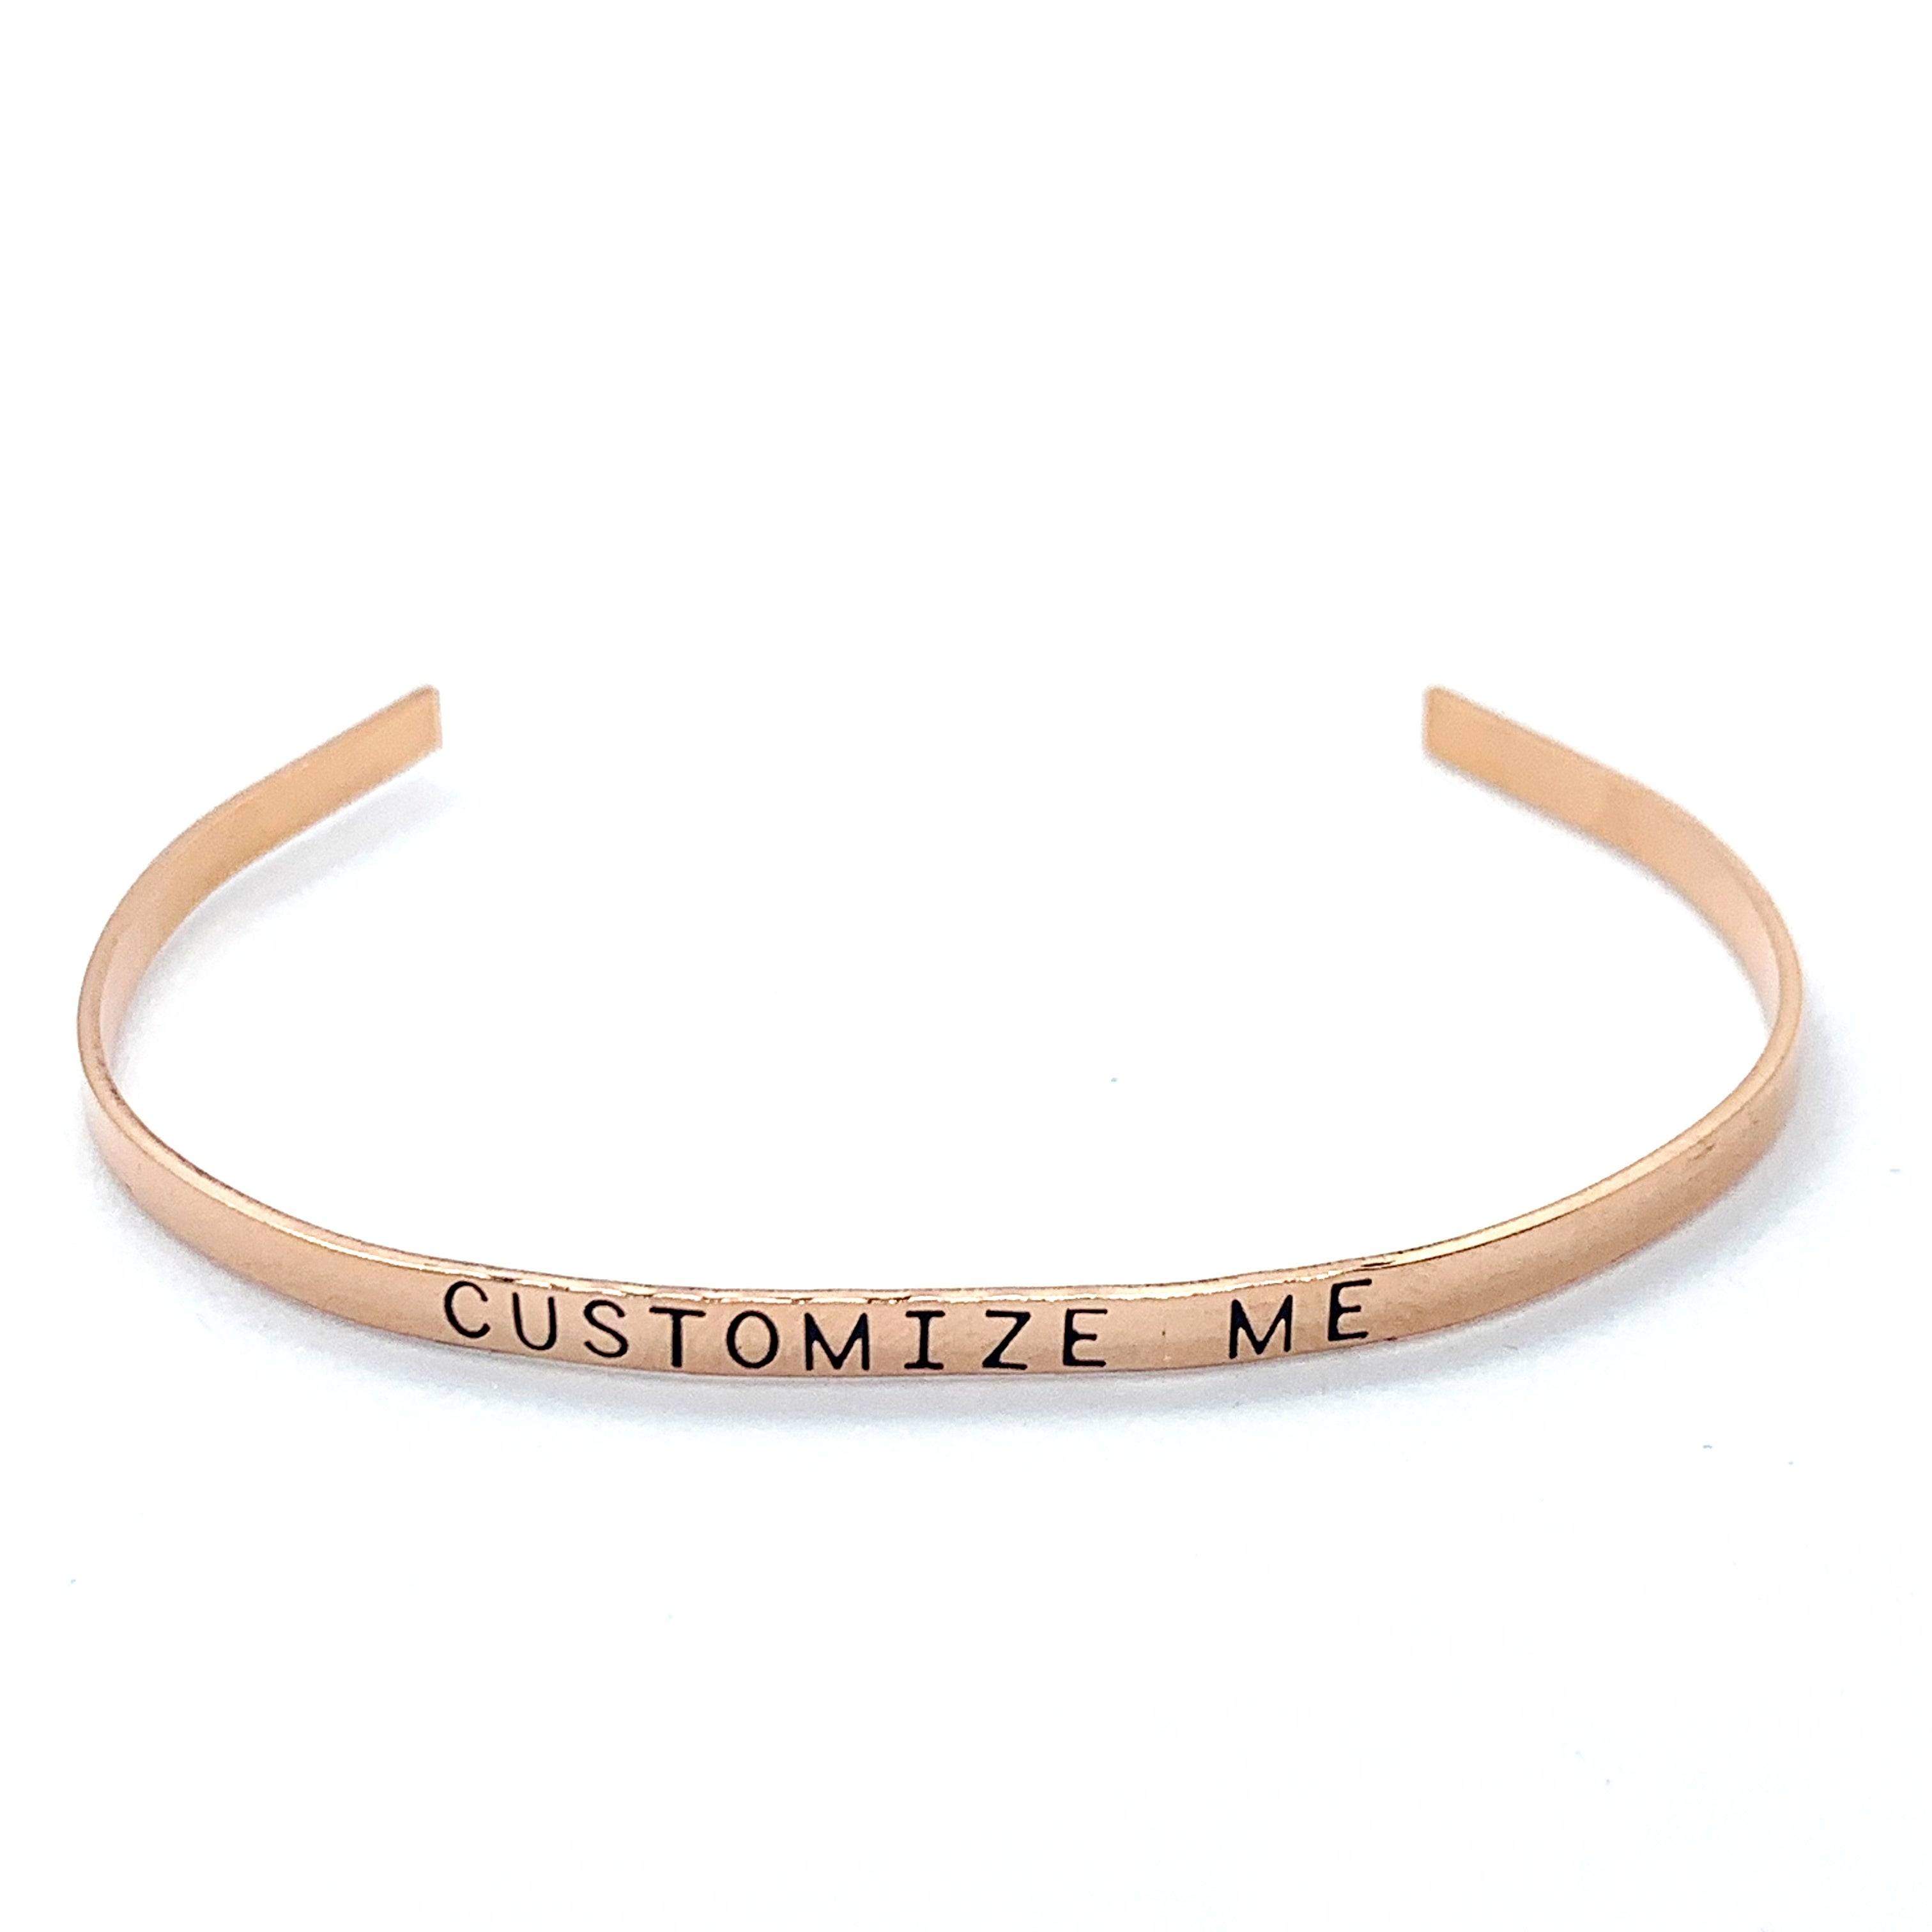 ⅛ inch Copper Cuff - Custom Cuff